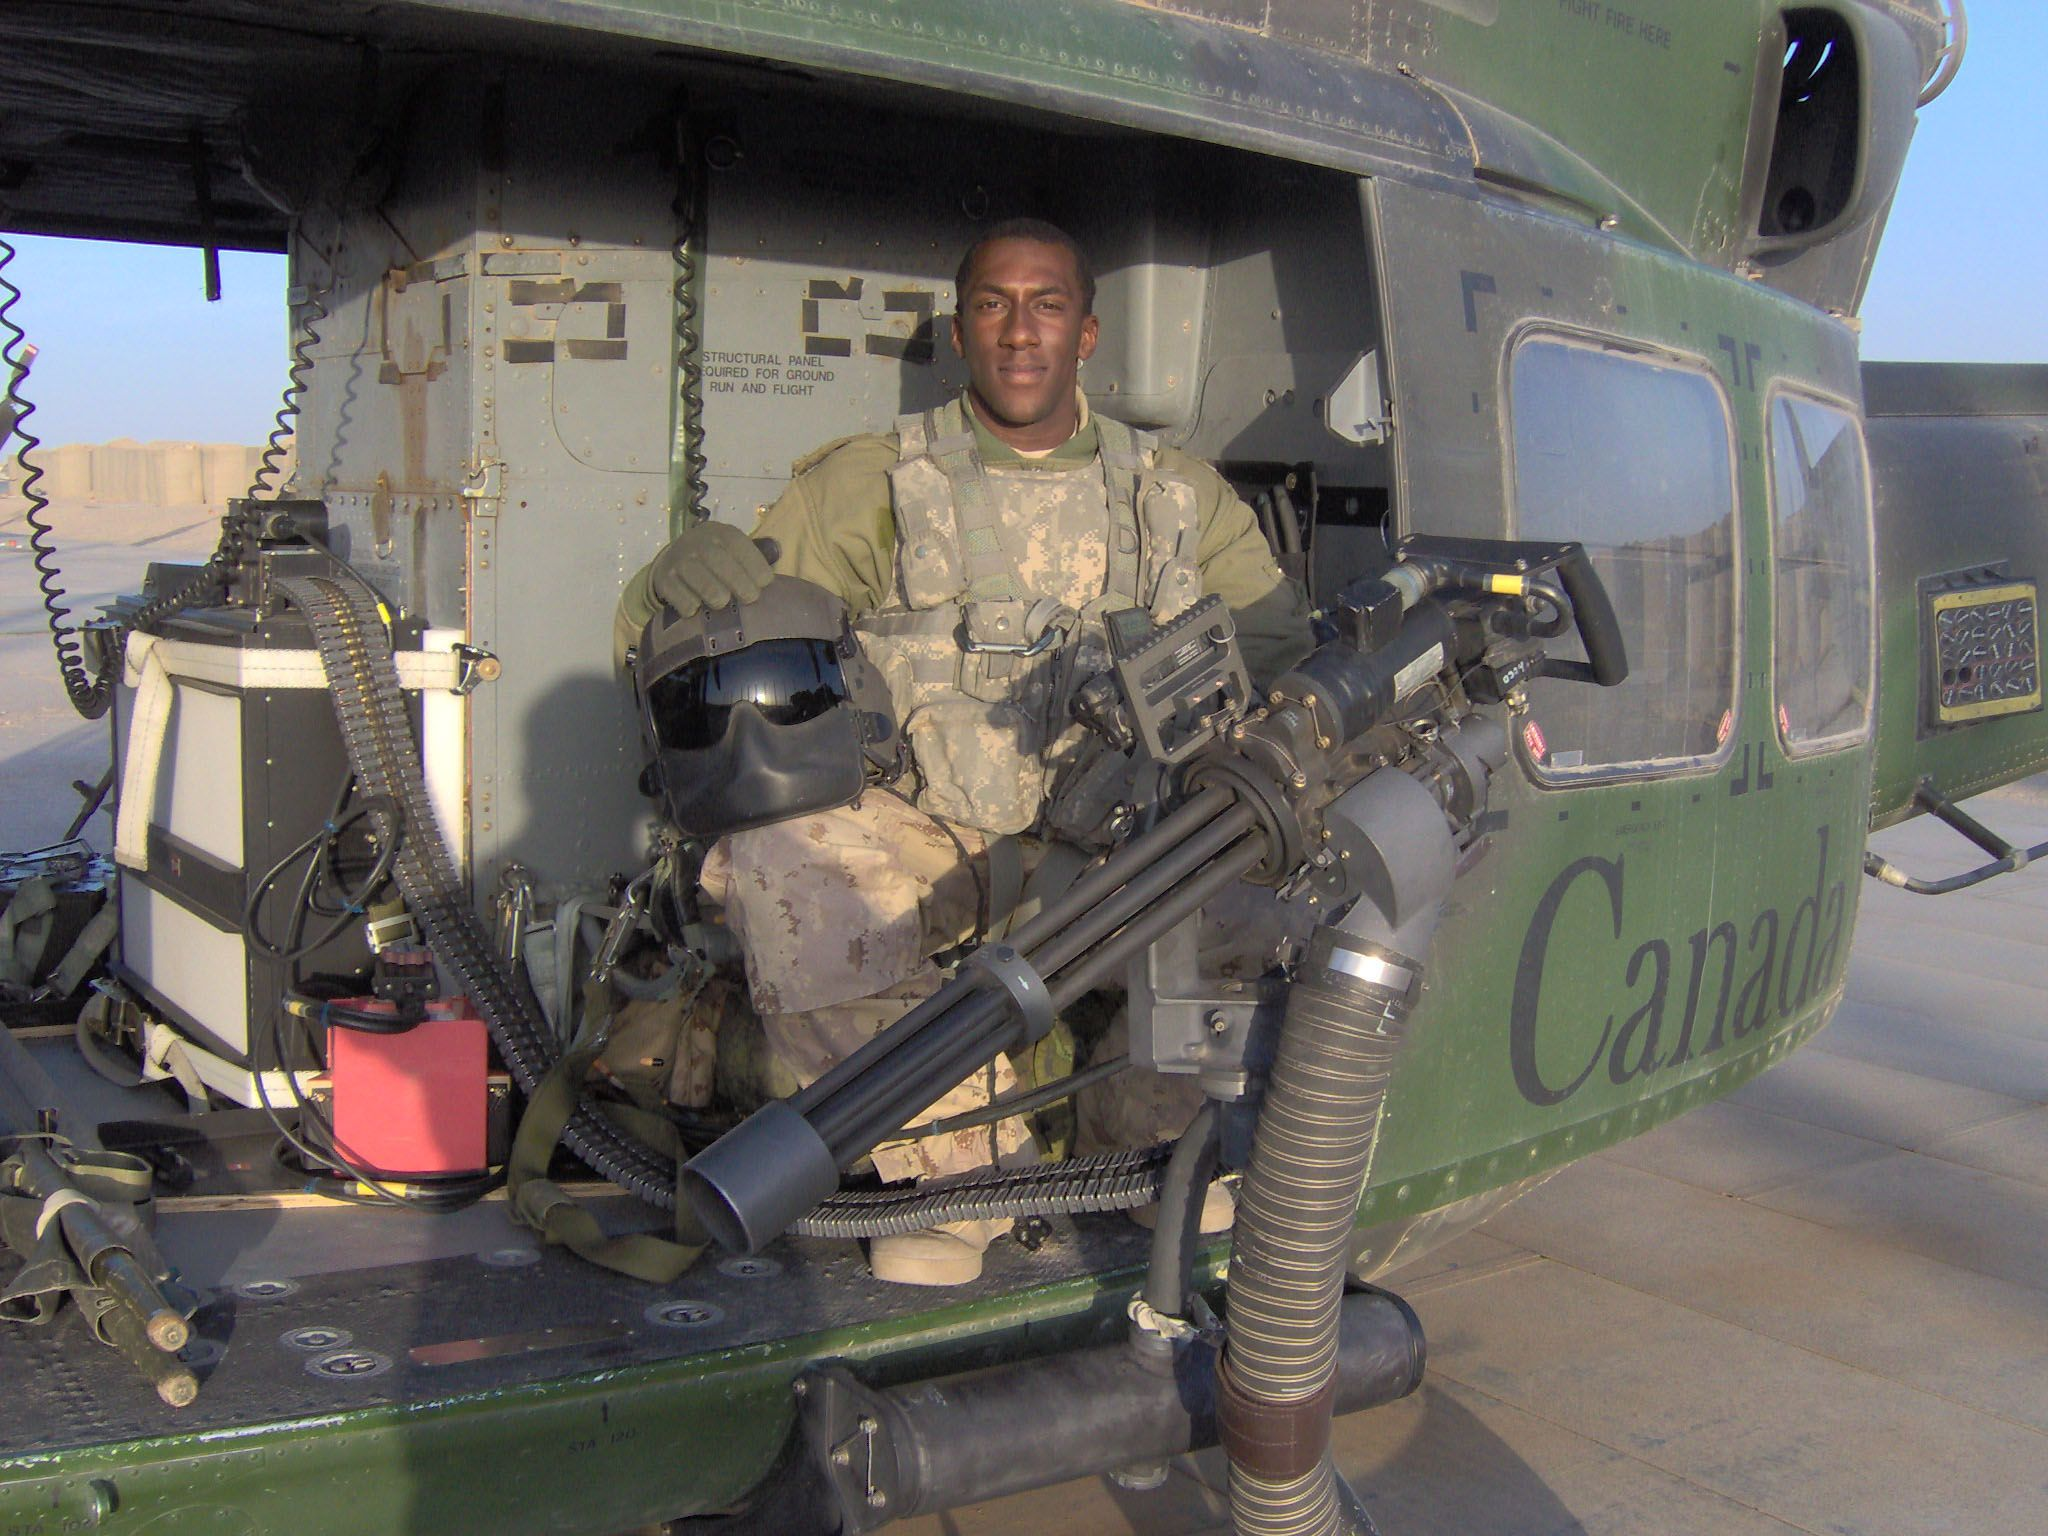 A Canadian door-gunner on the CH-146 Griffon tactical escort helicopter Afghanistan Feb  sc 1 st  Pinterest & A Canadian door-gunner on the CH-146 Griffon tactical escort ...